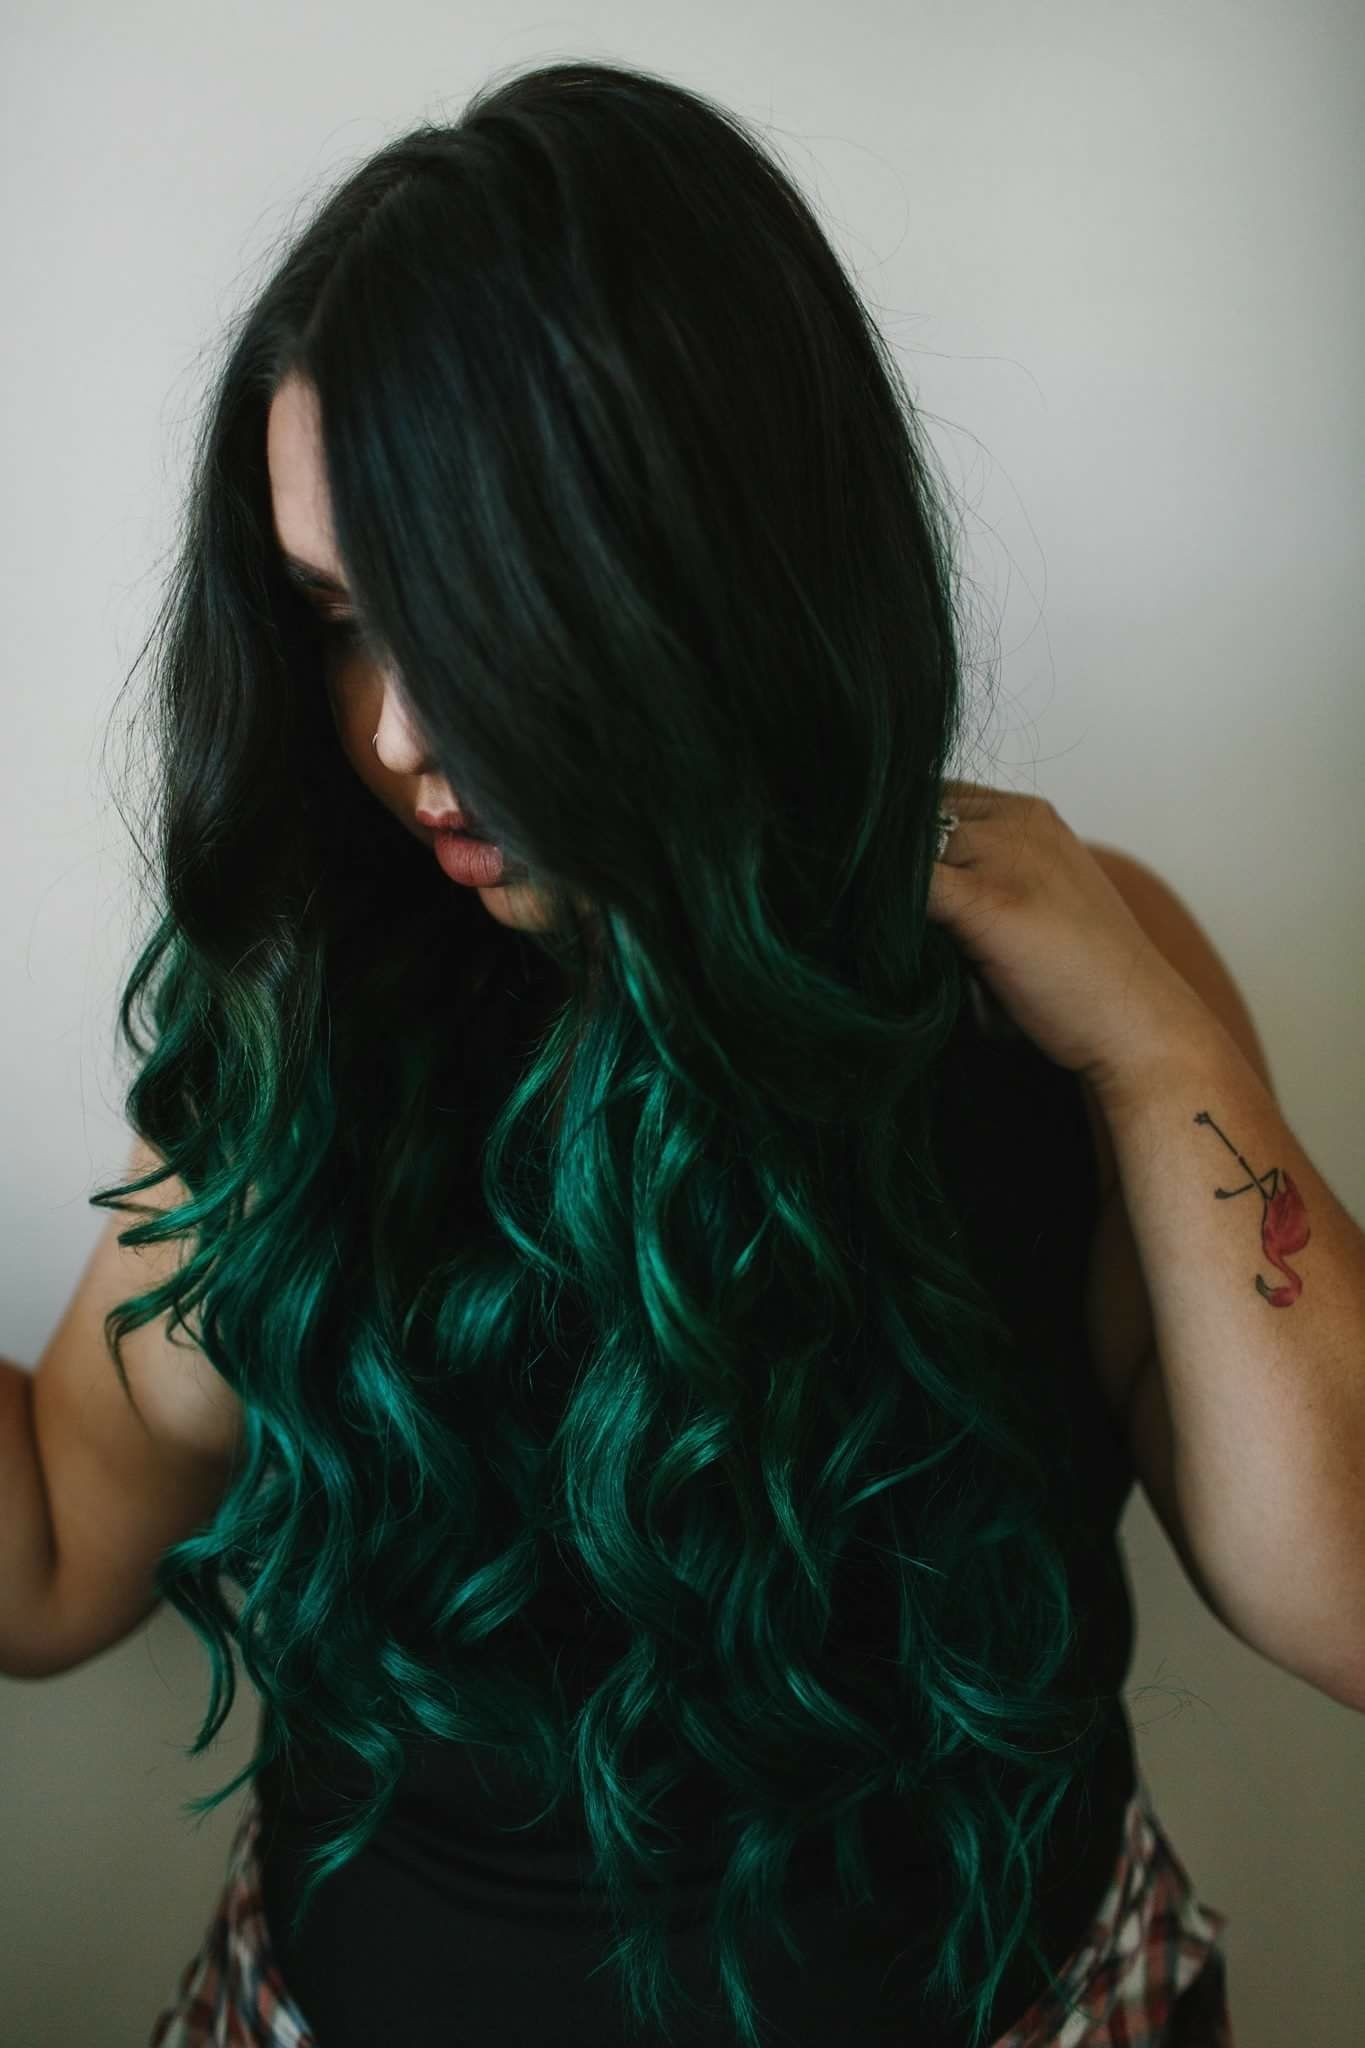 2019 year look- Green and Black hairstyles